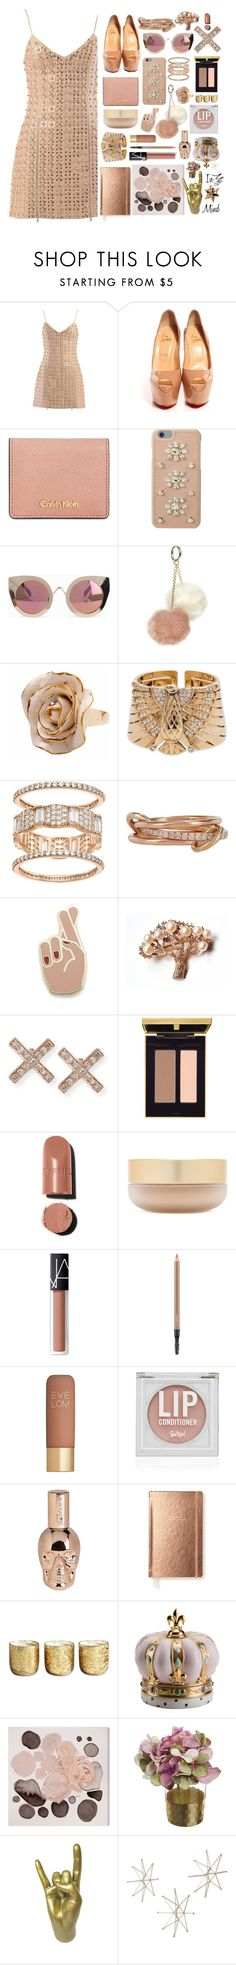 """""""In My Mind- Maty Noyes"""" by sofemmeia ❤ liked on Polyvore featuring David Koma, Christian Louboutin, Calvin Klein, MICHAEL Michael Kors, Quay, Dorothy Perkins, Hop Skip & Flutter, Cartier, SPINELLI KILCOLLIN and Georgia Perry"""